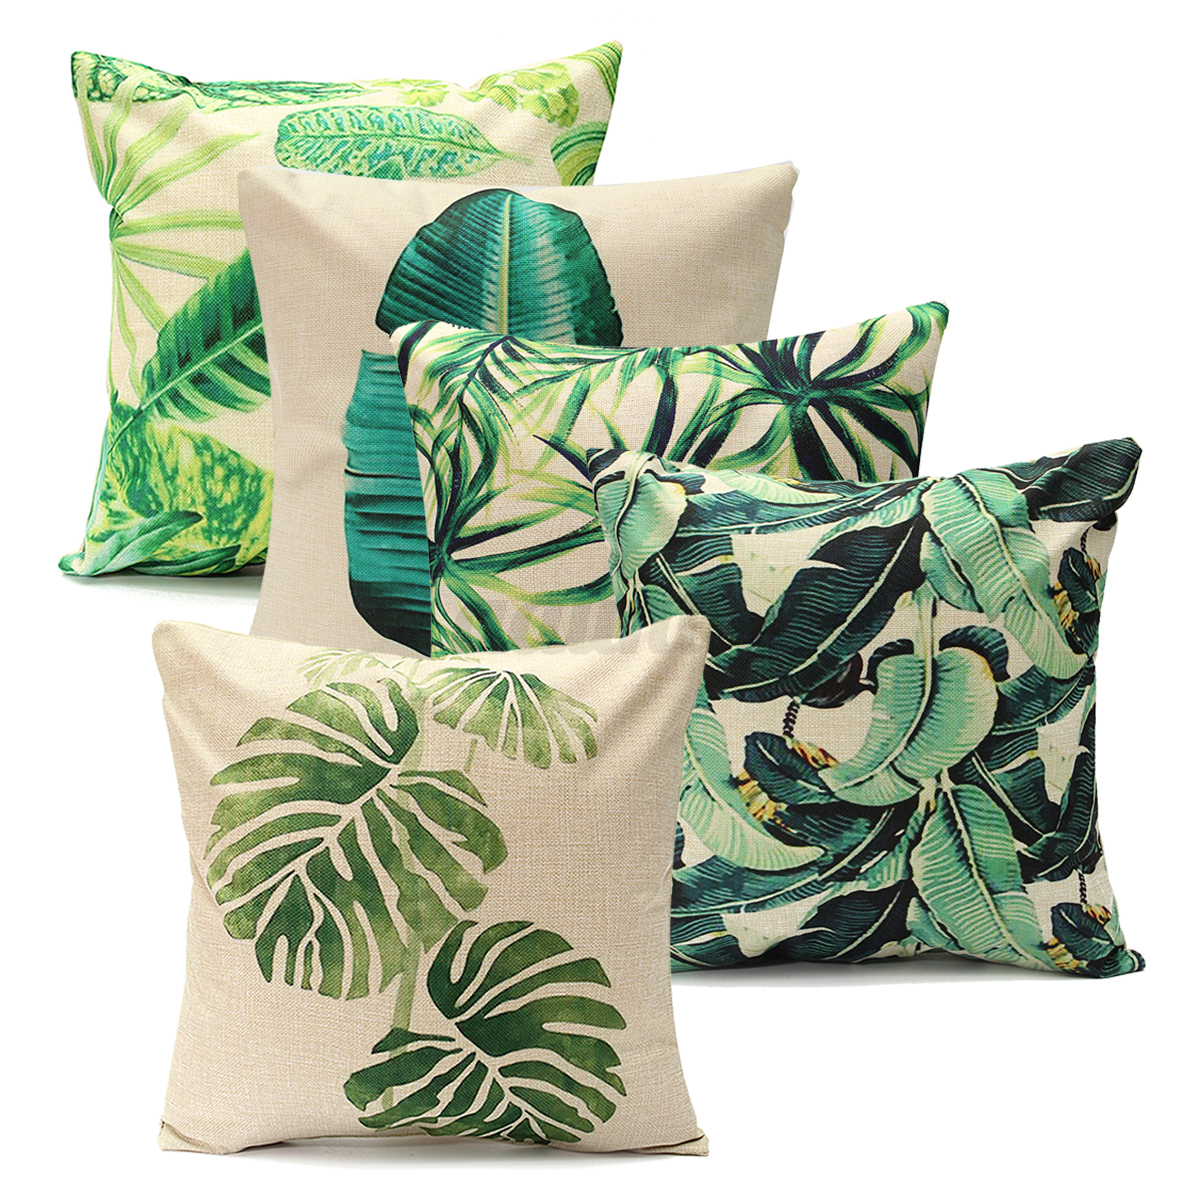 Green Leaf Cotton Linen Cushion Cover Throw Pillow Case Sofa Home Decoration 18